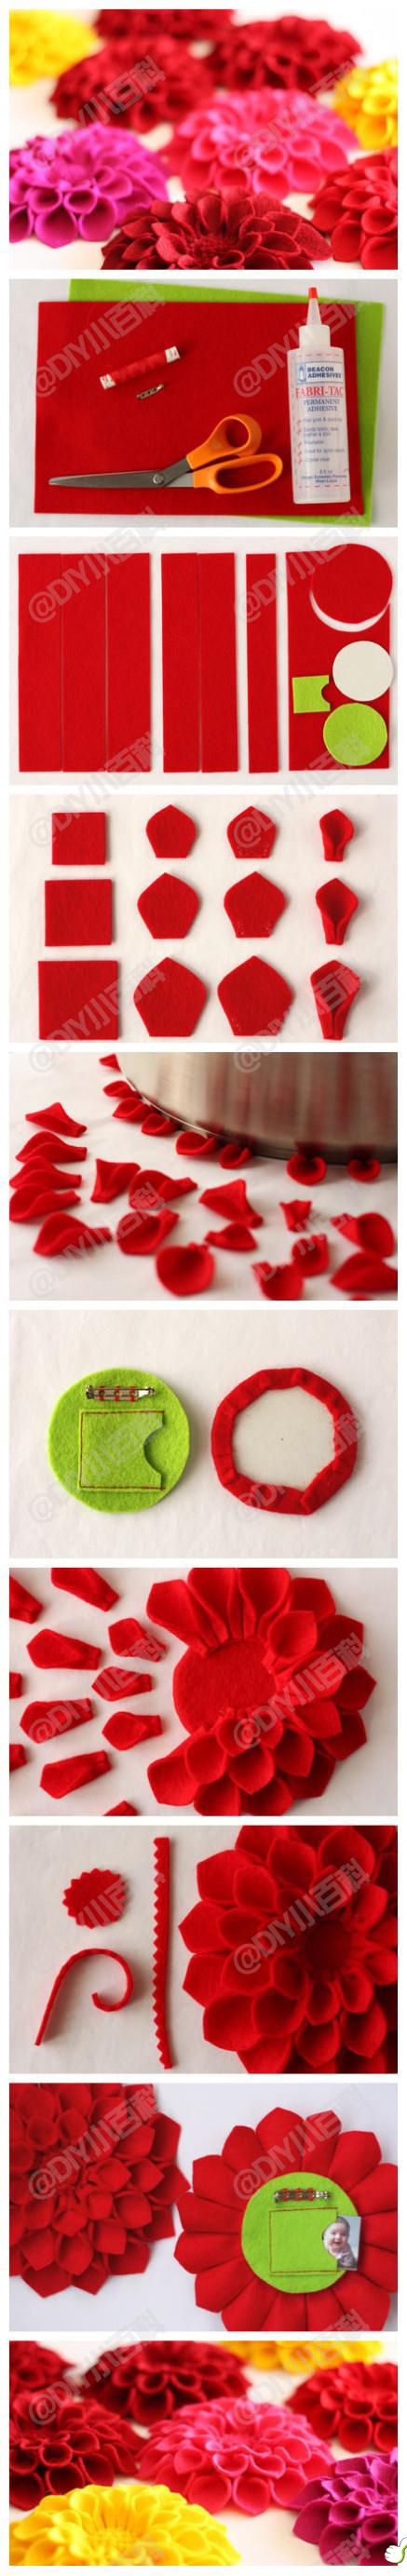 dahlia felt flower for brooches, hair clips, clothing or purse embellishment, necklace, package decorations, etc